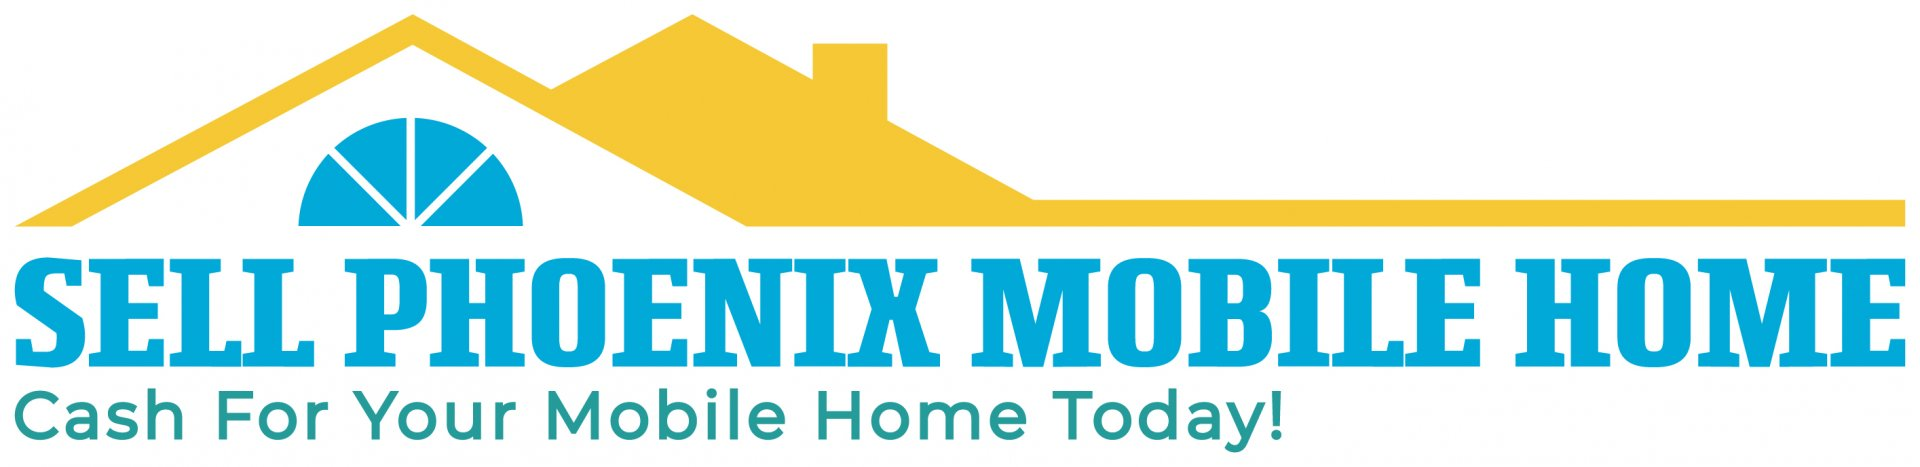 Phoenix Mobile Home Buyers logo